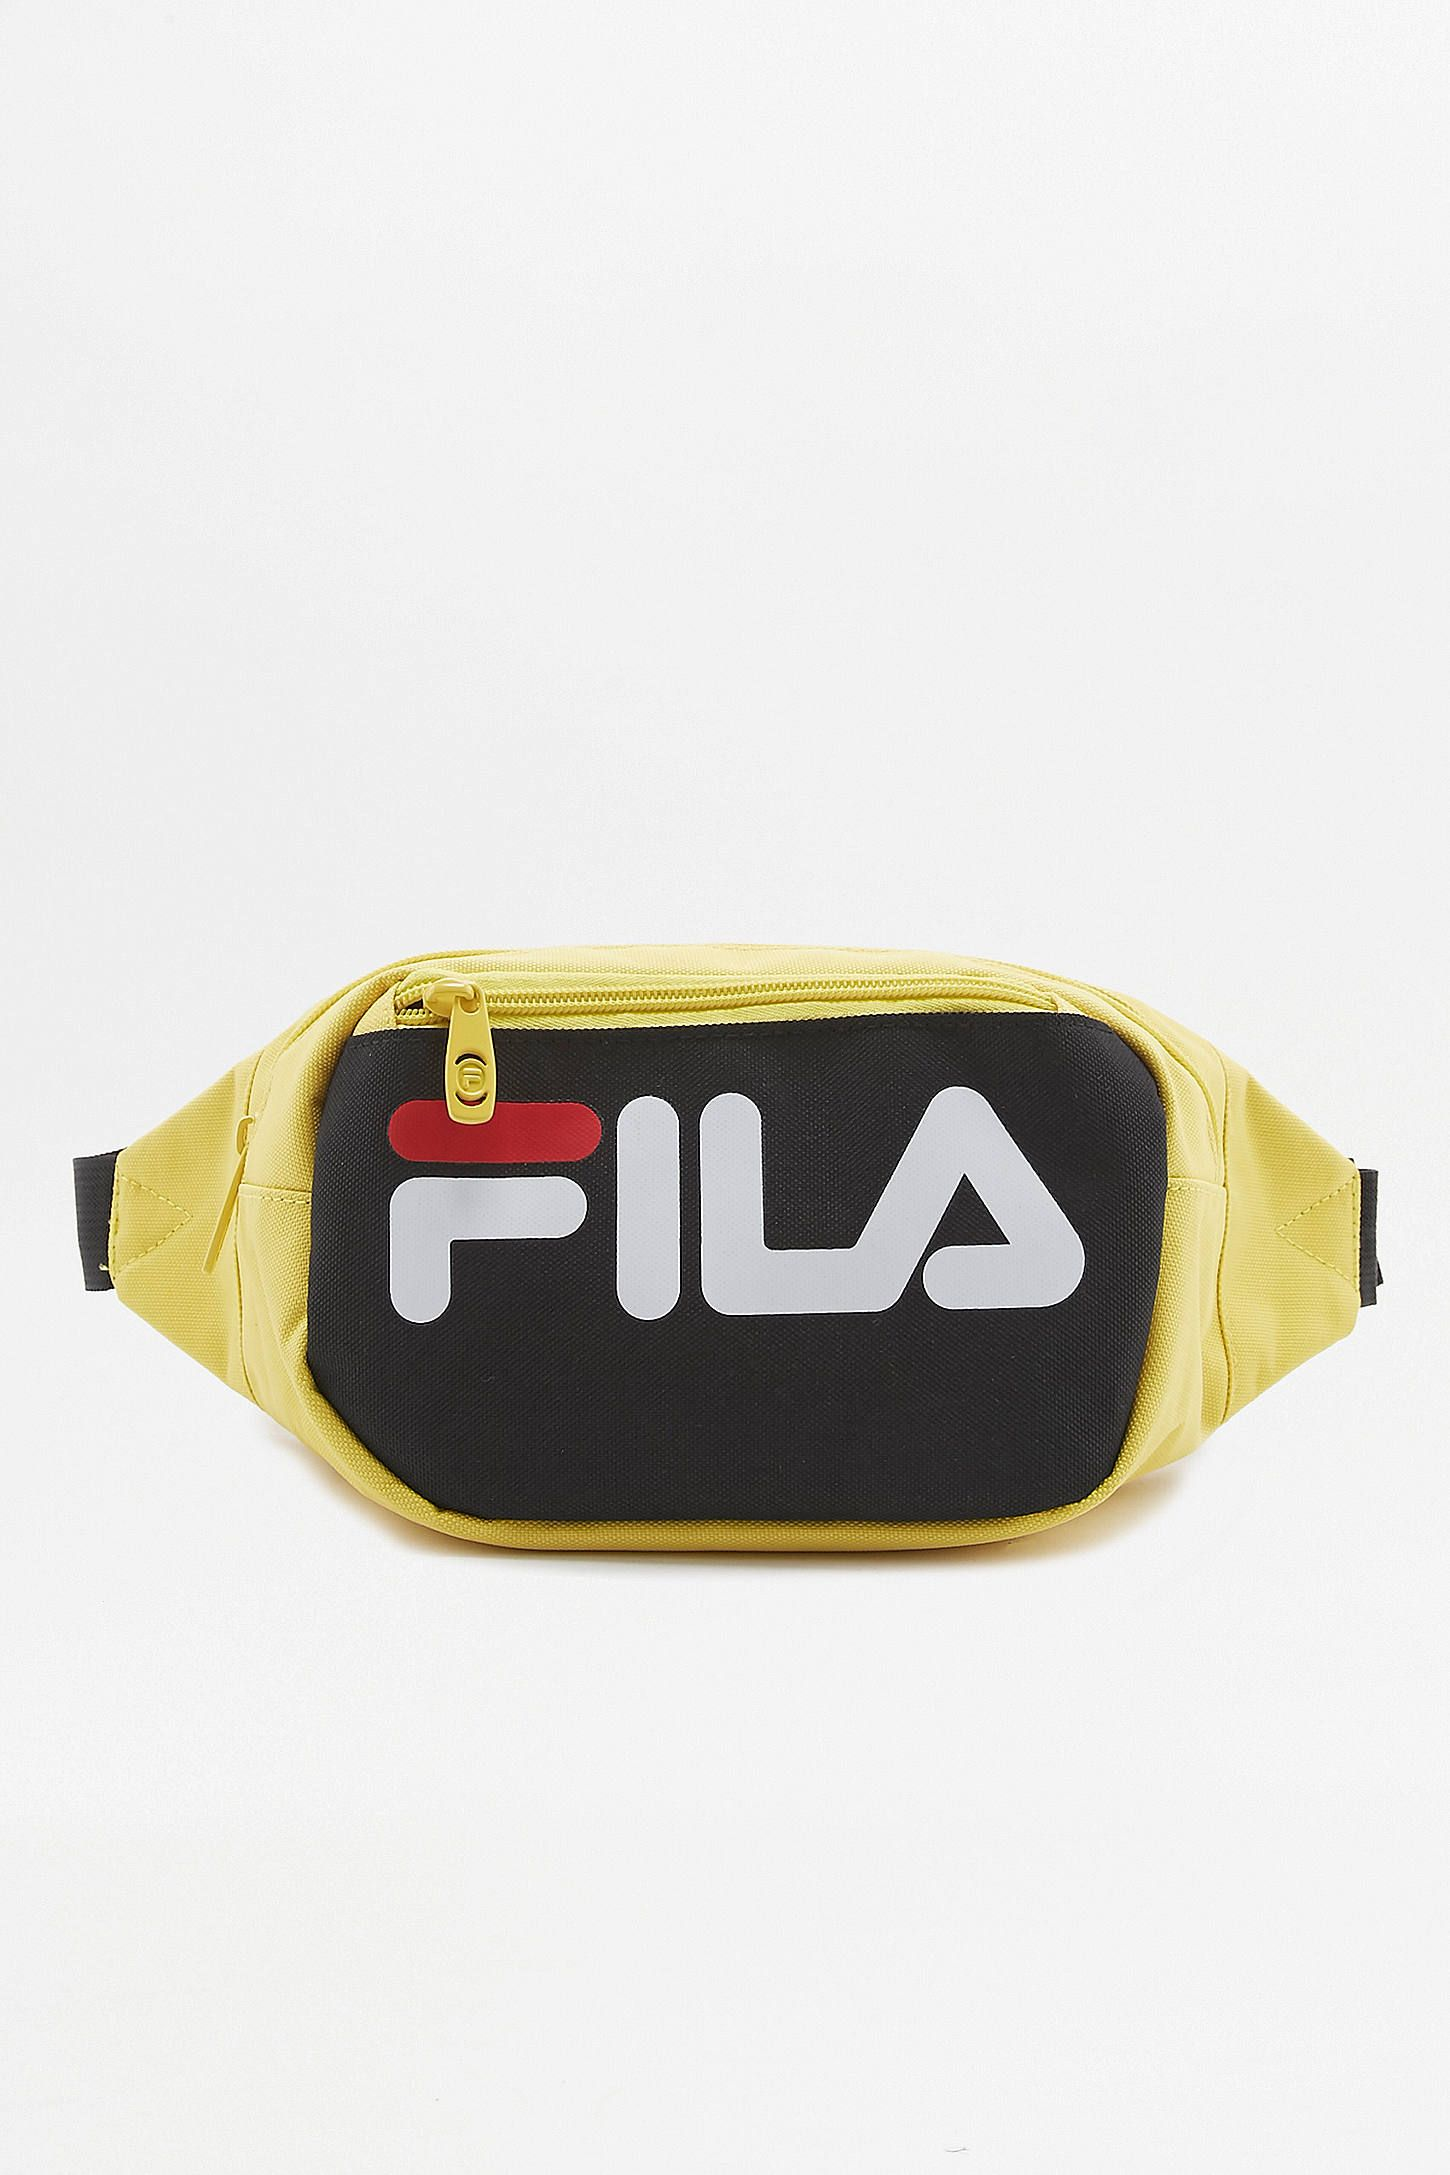 3e36c9ad083d FILA Adams Black and Yellow Courier Cross Body Bag | Bags | Adam ...